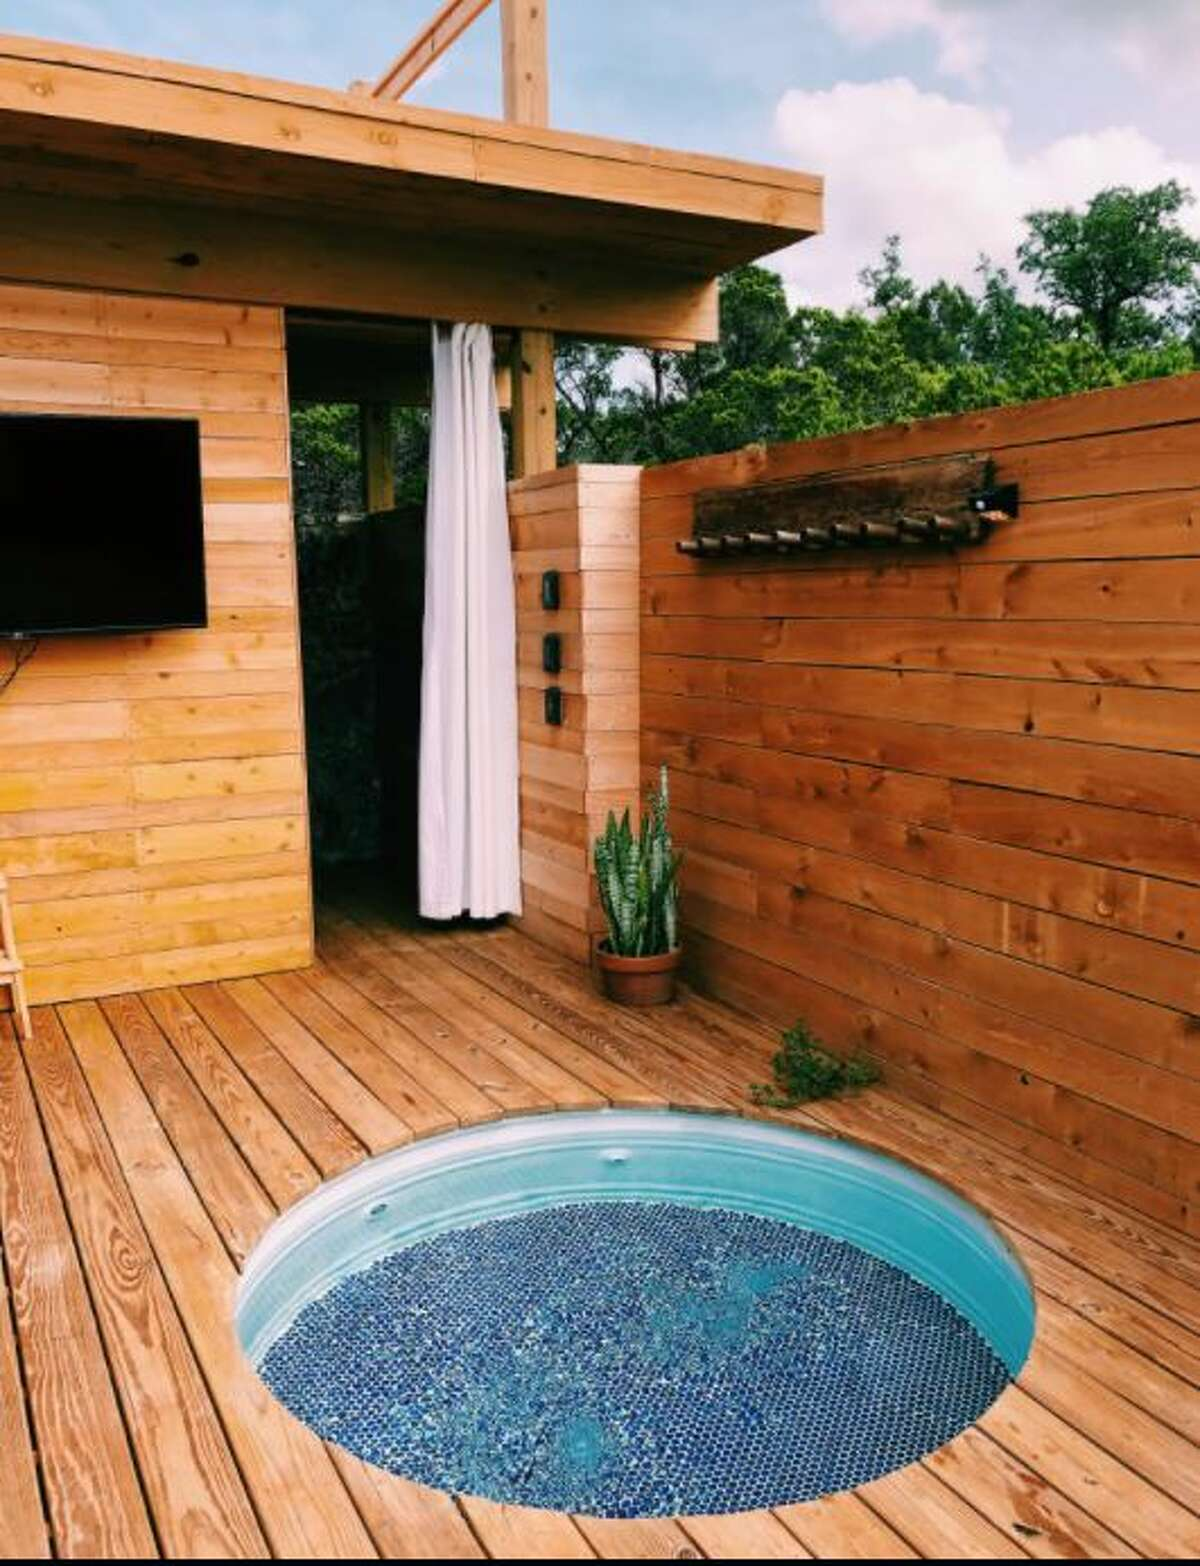 If you love stargazing and privacy, this spot might be ideal. It has 10 acres of nature trails, private rooftop deck for the best stargazing, a hot tub and a fire pit.